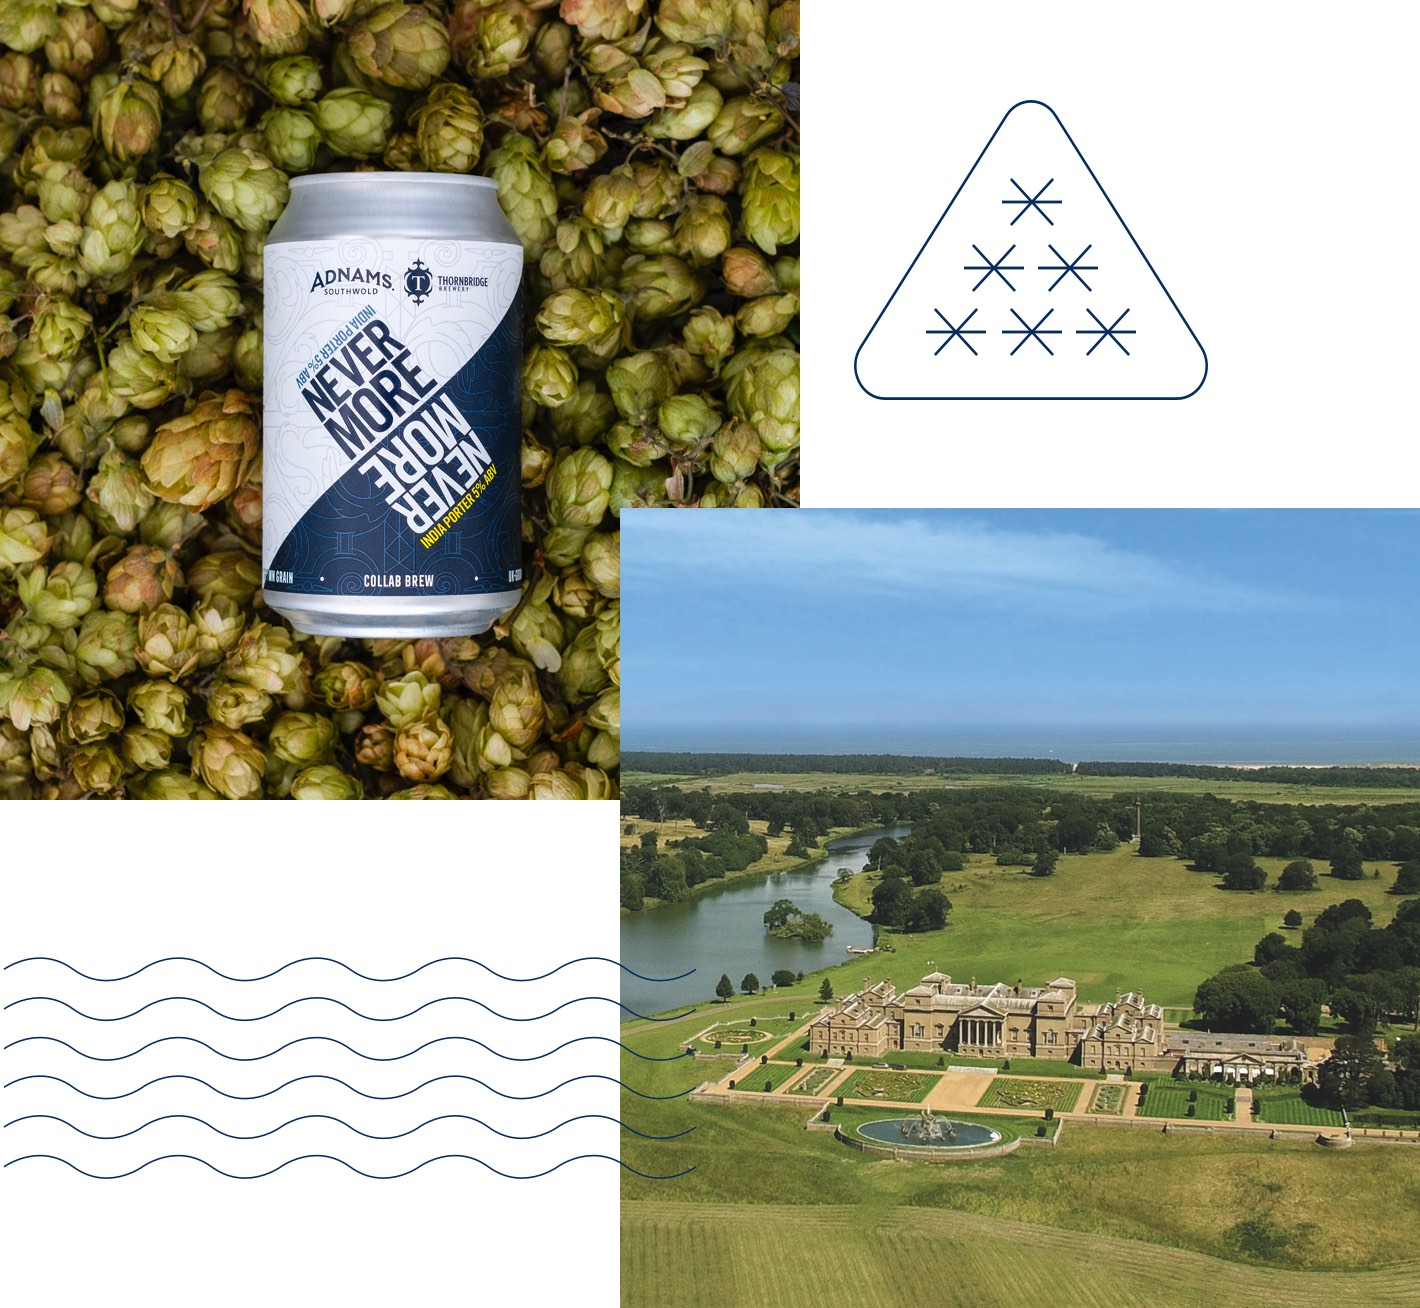 Group images of Holkham Estate and Nevermore beer can